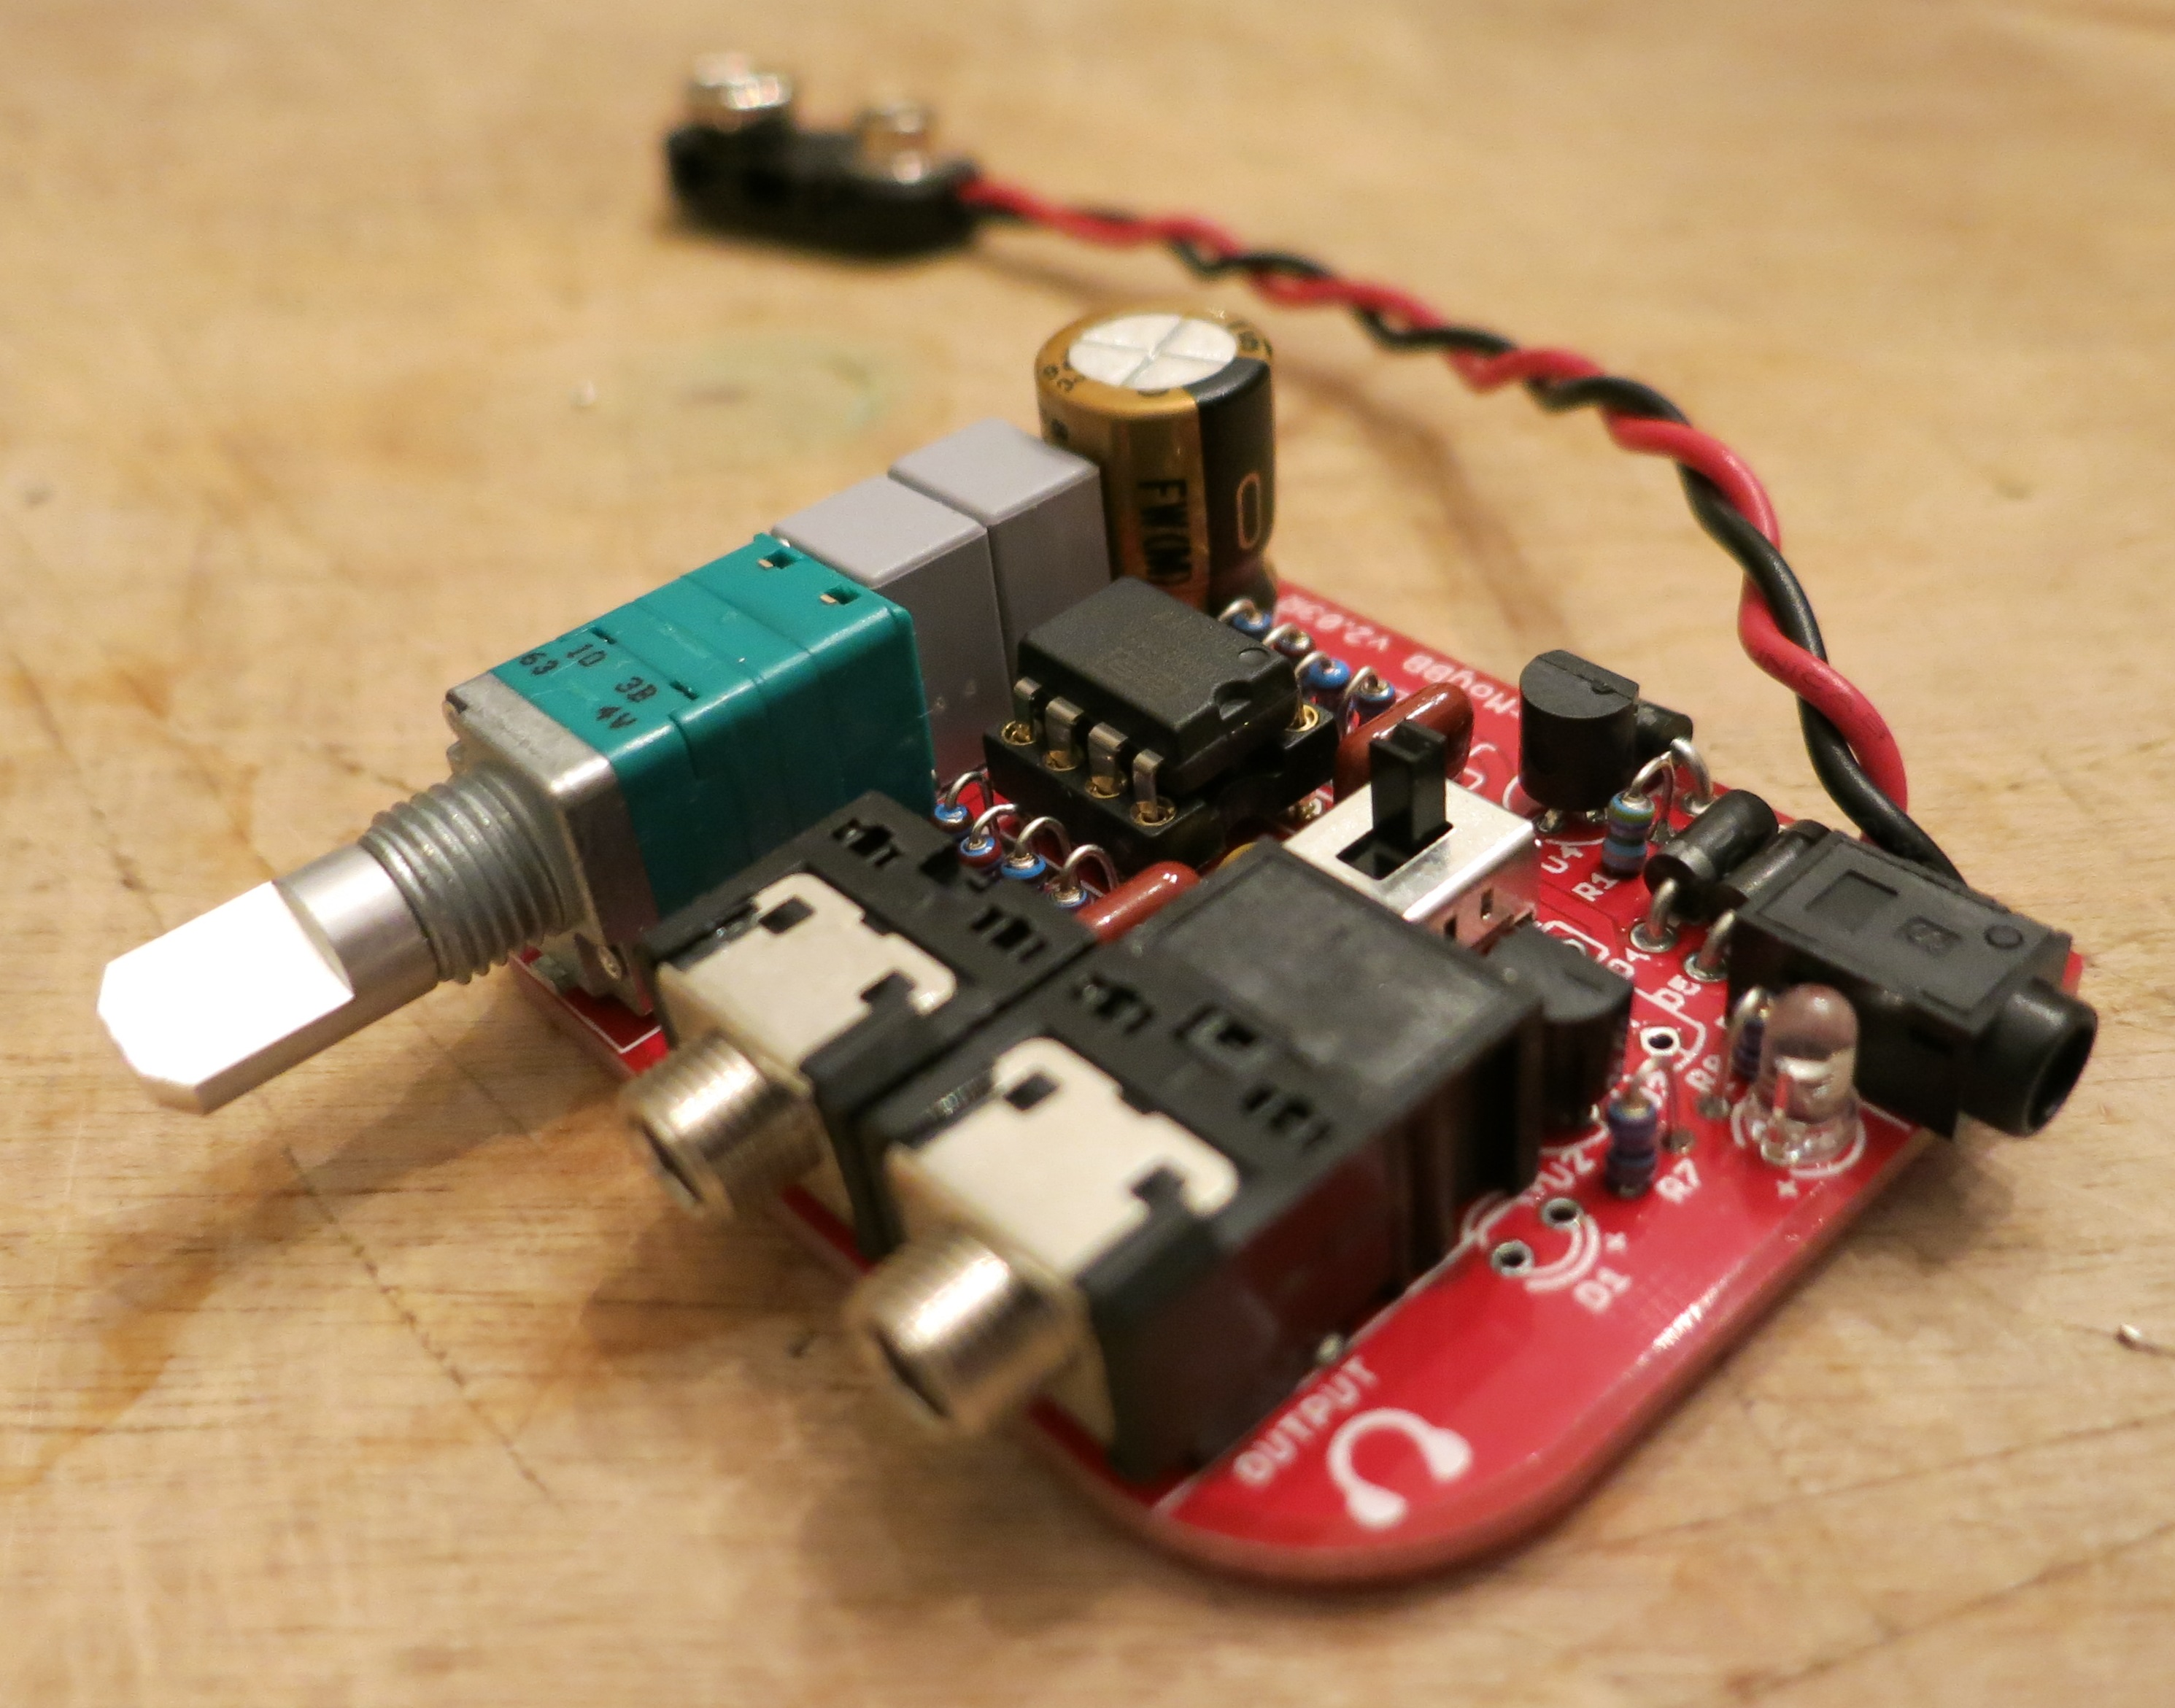 Chu Moy Audio Jack Wiring - Search Wiring Diagram for Your ... Kawasaki Mule Wiring Diagram on bad boy wiring diagram, kawasaki jet ski wiring diagram, kawasaki 4 wheeler wiring diagram, land pride wiring diagram, kubota wiring diagram, kawasaki klr wiring diagram, kawasaki wiring schematics, arctic cat wildcat wiring diagram, kawasaki kz650 wiring-diagram, kawasaki zrx wiring diagram, kawasaki bayou wiring diagram, trailers wiring diagram, kawasaki ignition switch wiring diagram, bush hog wiring diagram, case wiring diagram, honda wiring diagram, mule harness parts diagram, kawasaki klf 300 wiring diagram, engine wiring diagram, argo wiring diagram,